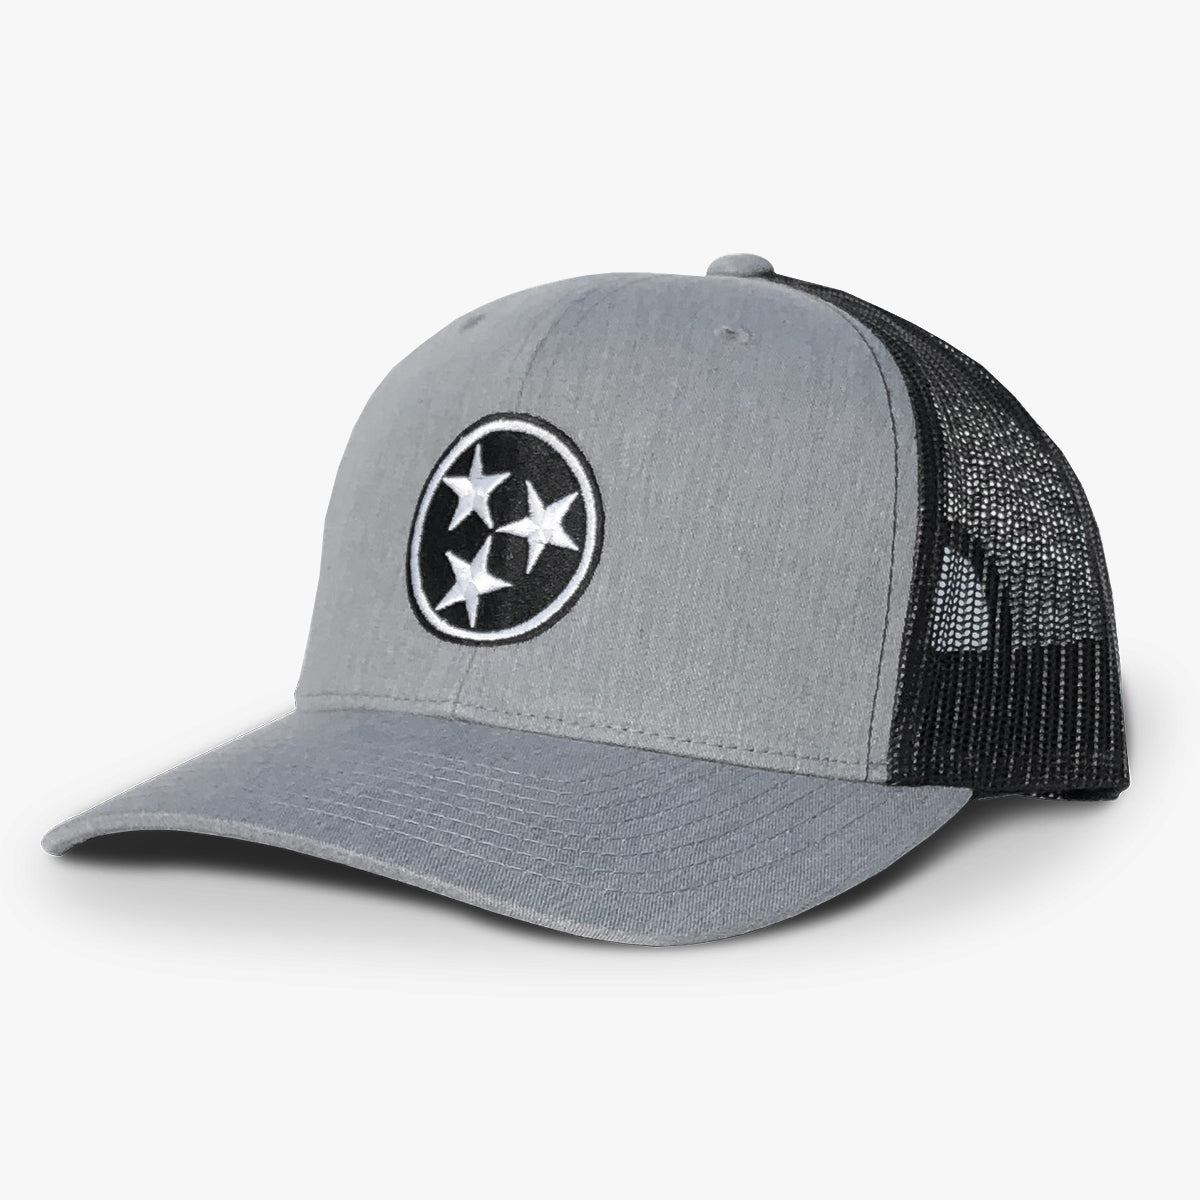 Tennessee Tri Star Flag Trucker Hat Tennessee Tristar Hat Gray Black Geenyus Brand